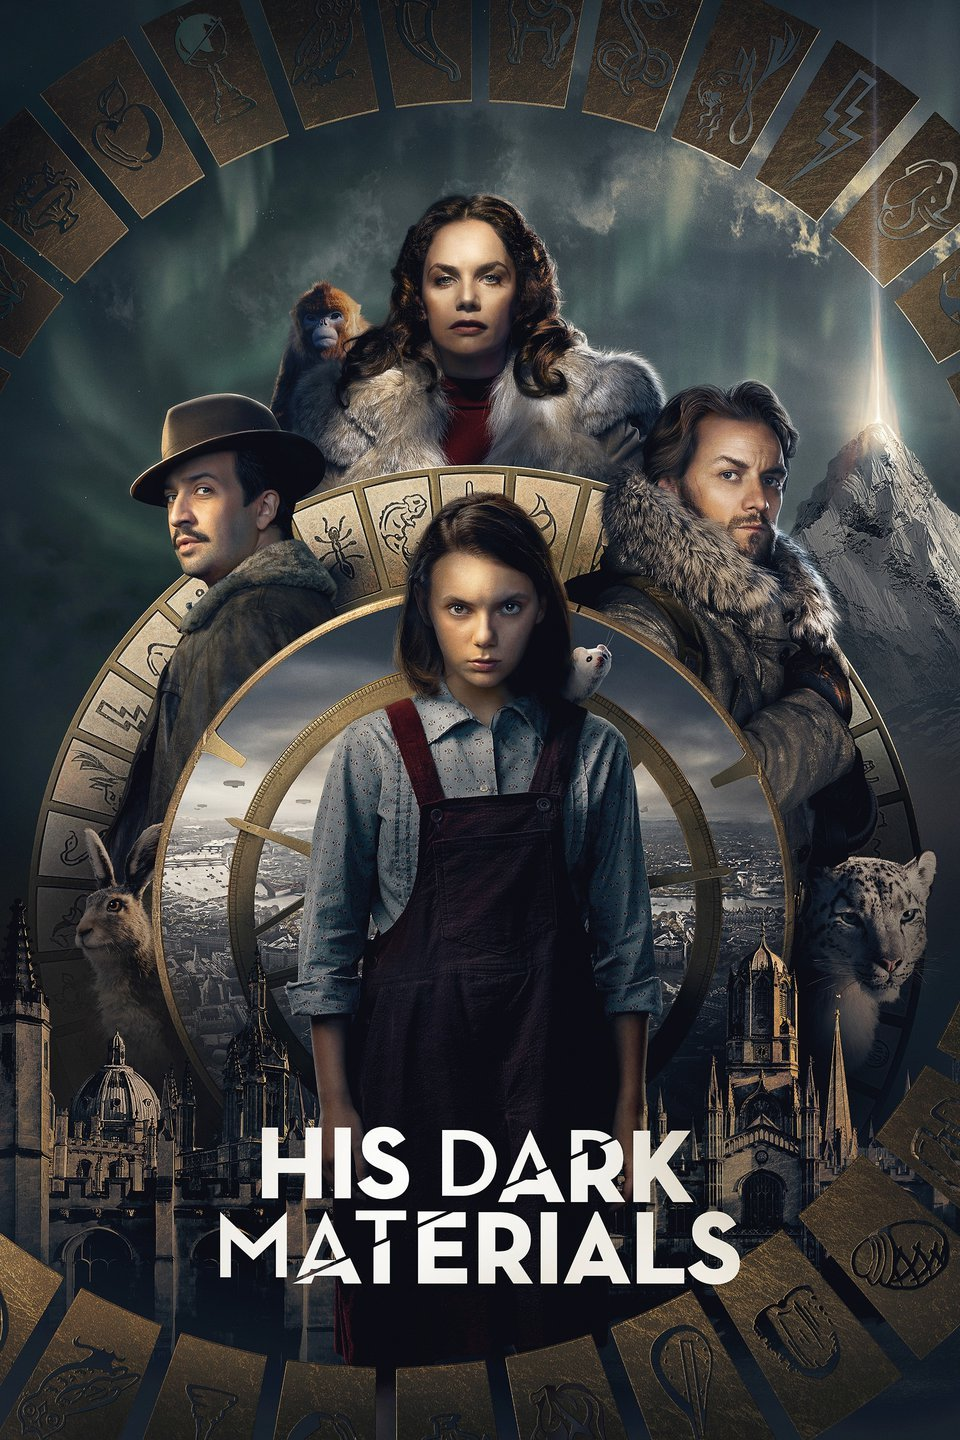 His Dark Materials (2019 mini-series)